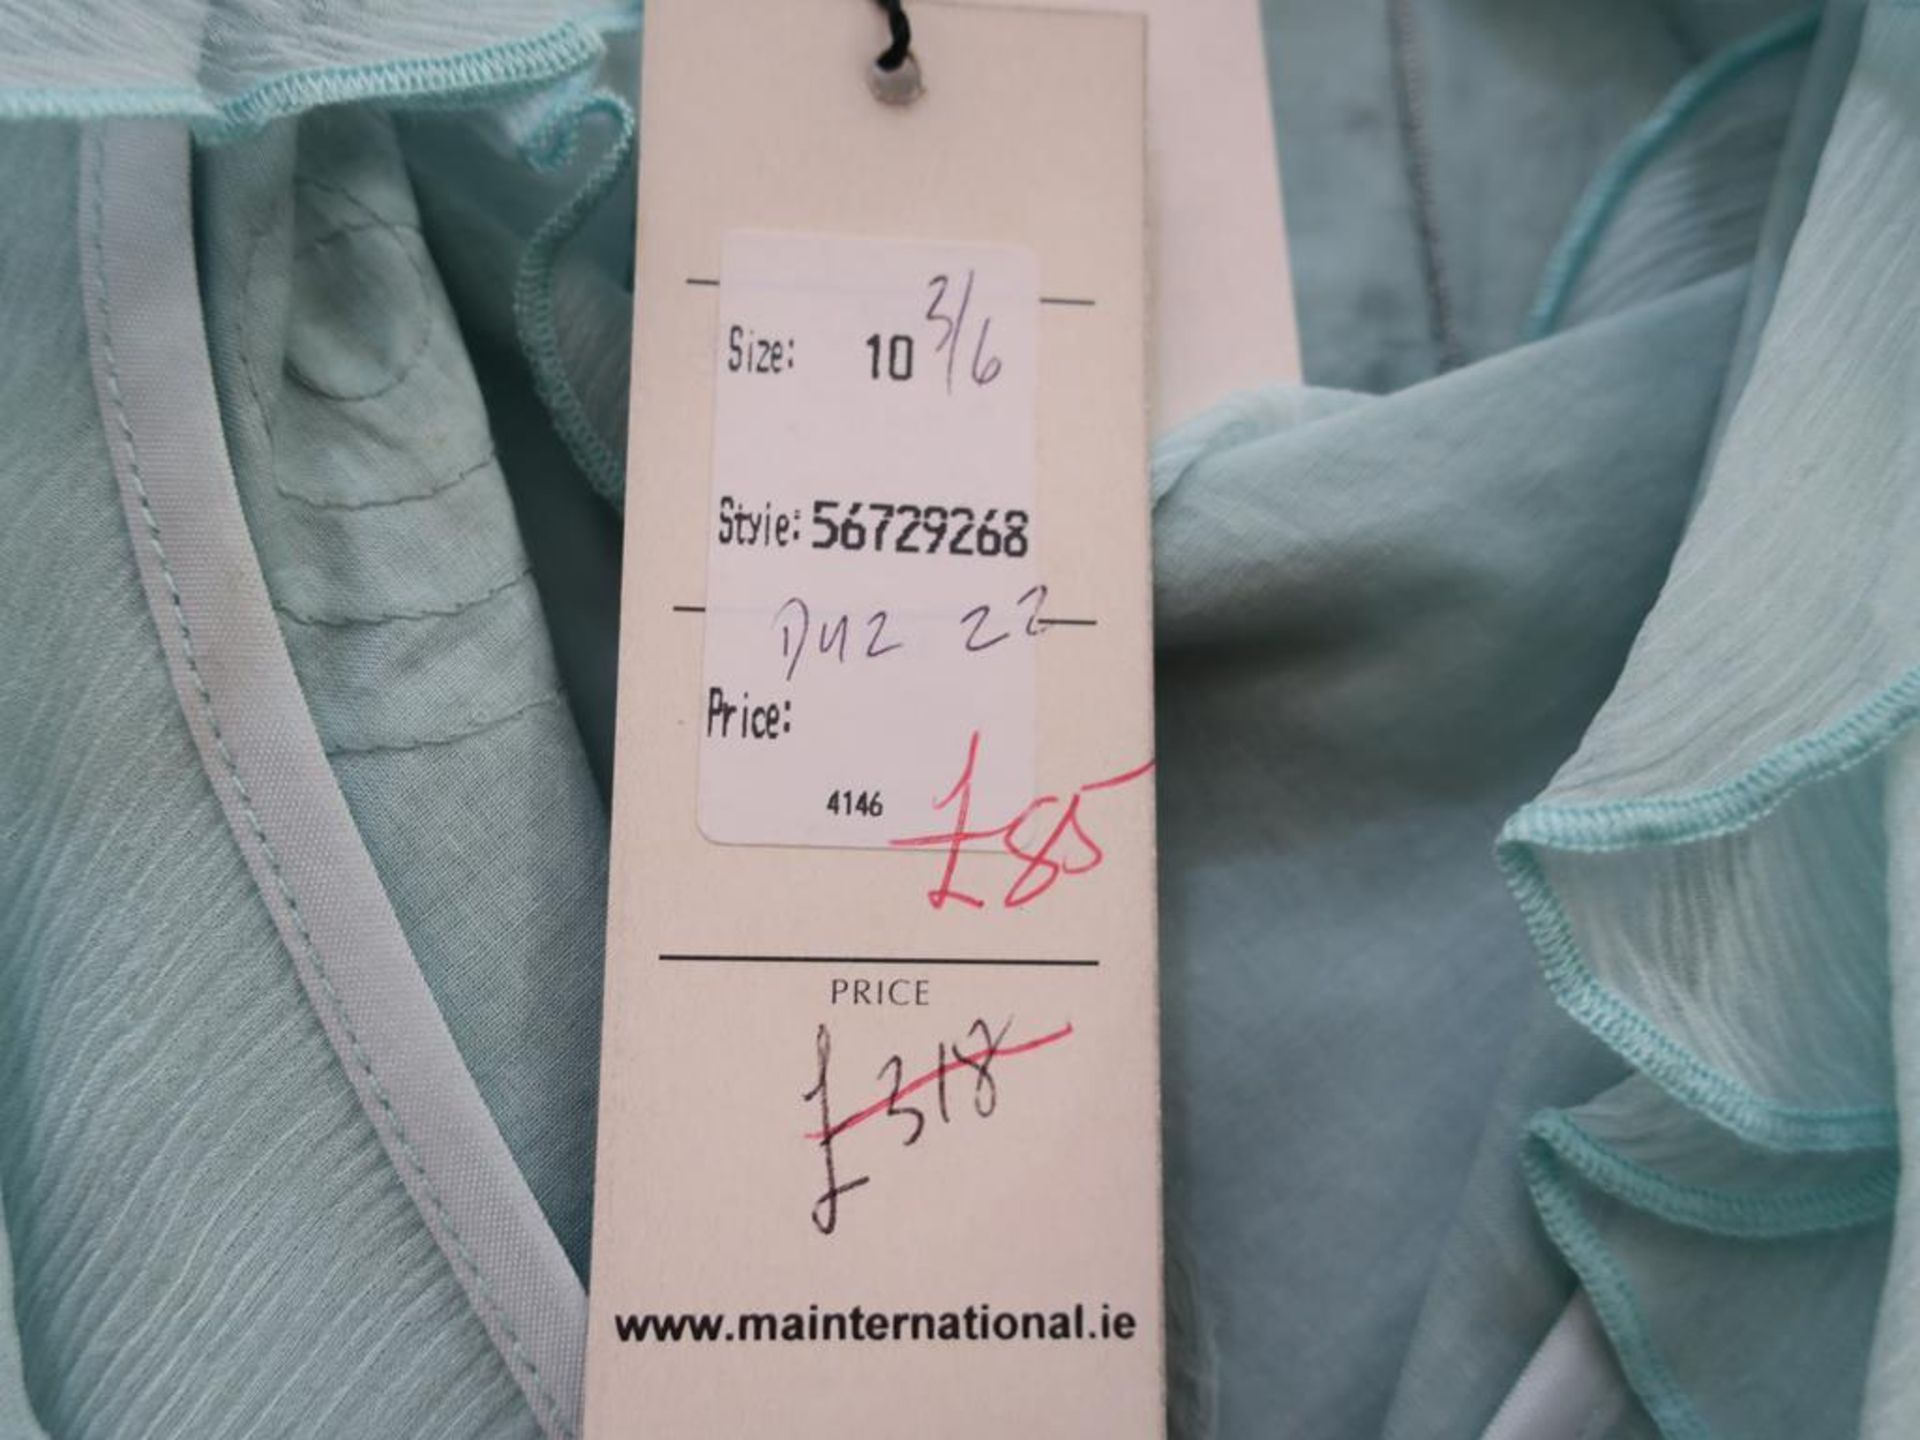 Lot 8011 - * A collection of five Ladies Garments. Names include Kate Cooper, Decisions, Lecomte, Apanage,